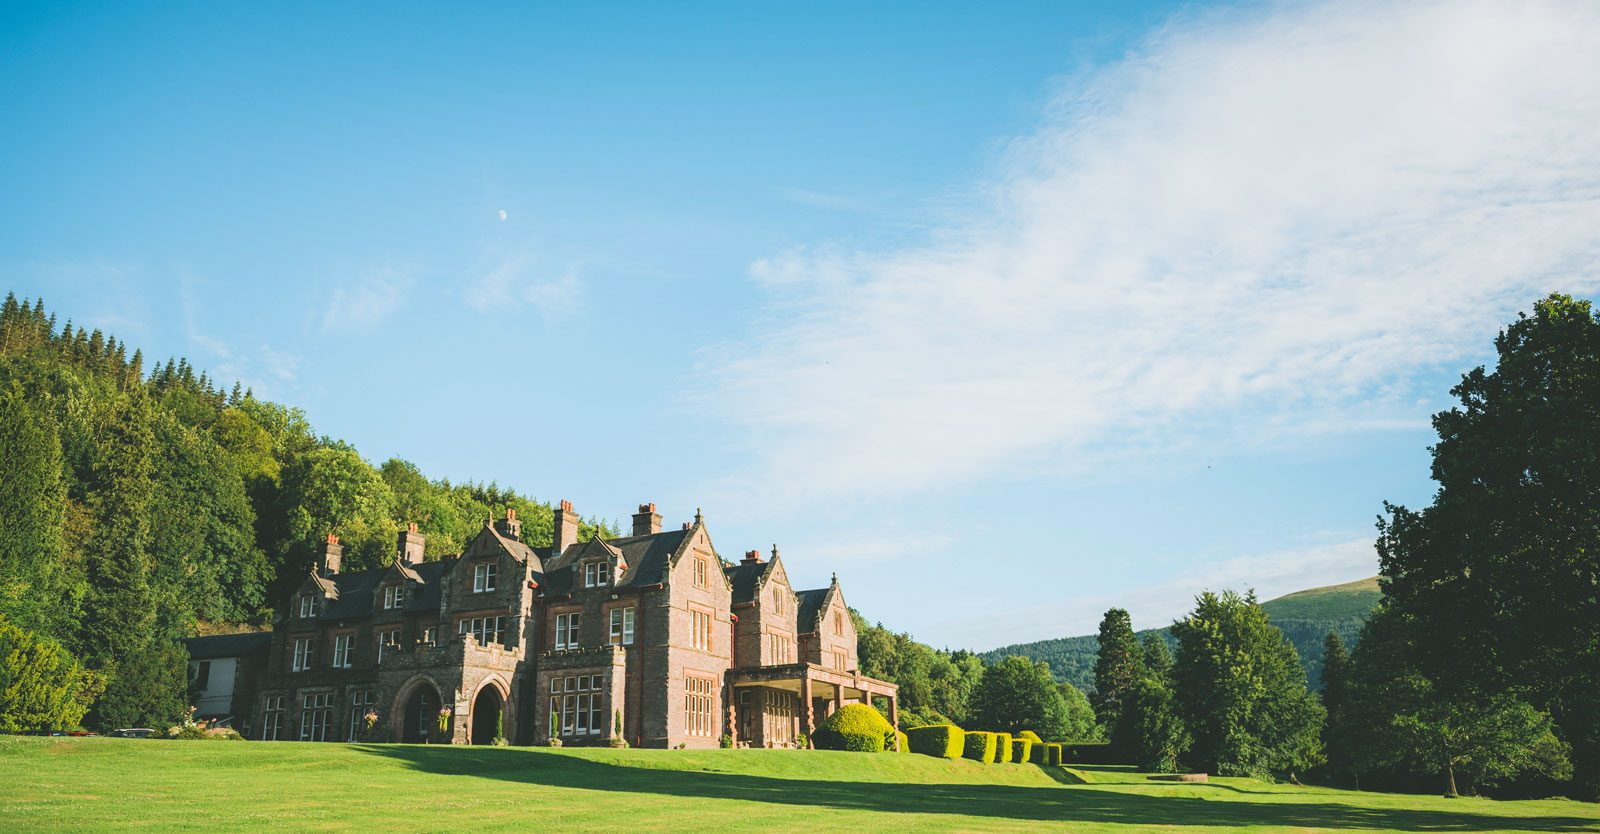 Wales Corporate Travel Events, Buckland Hall, Bwlch, Wales